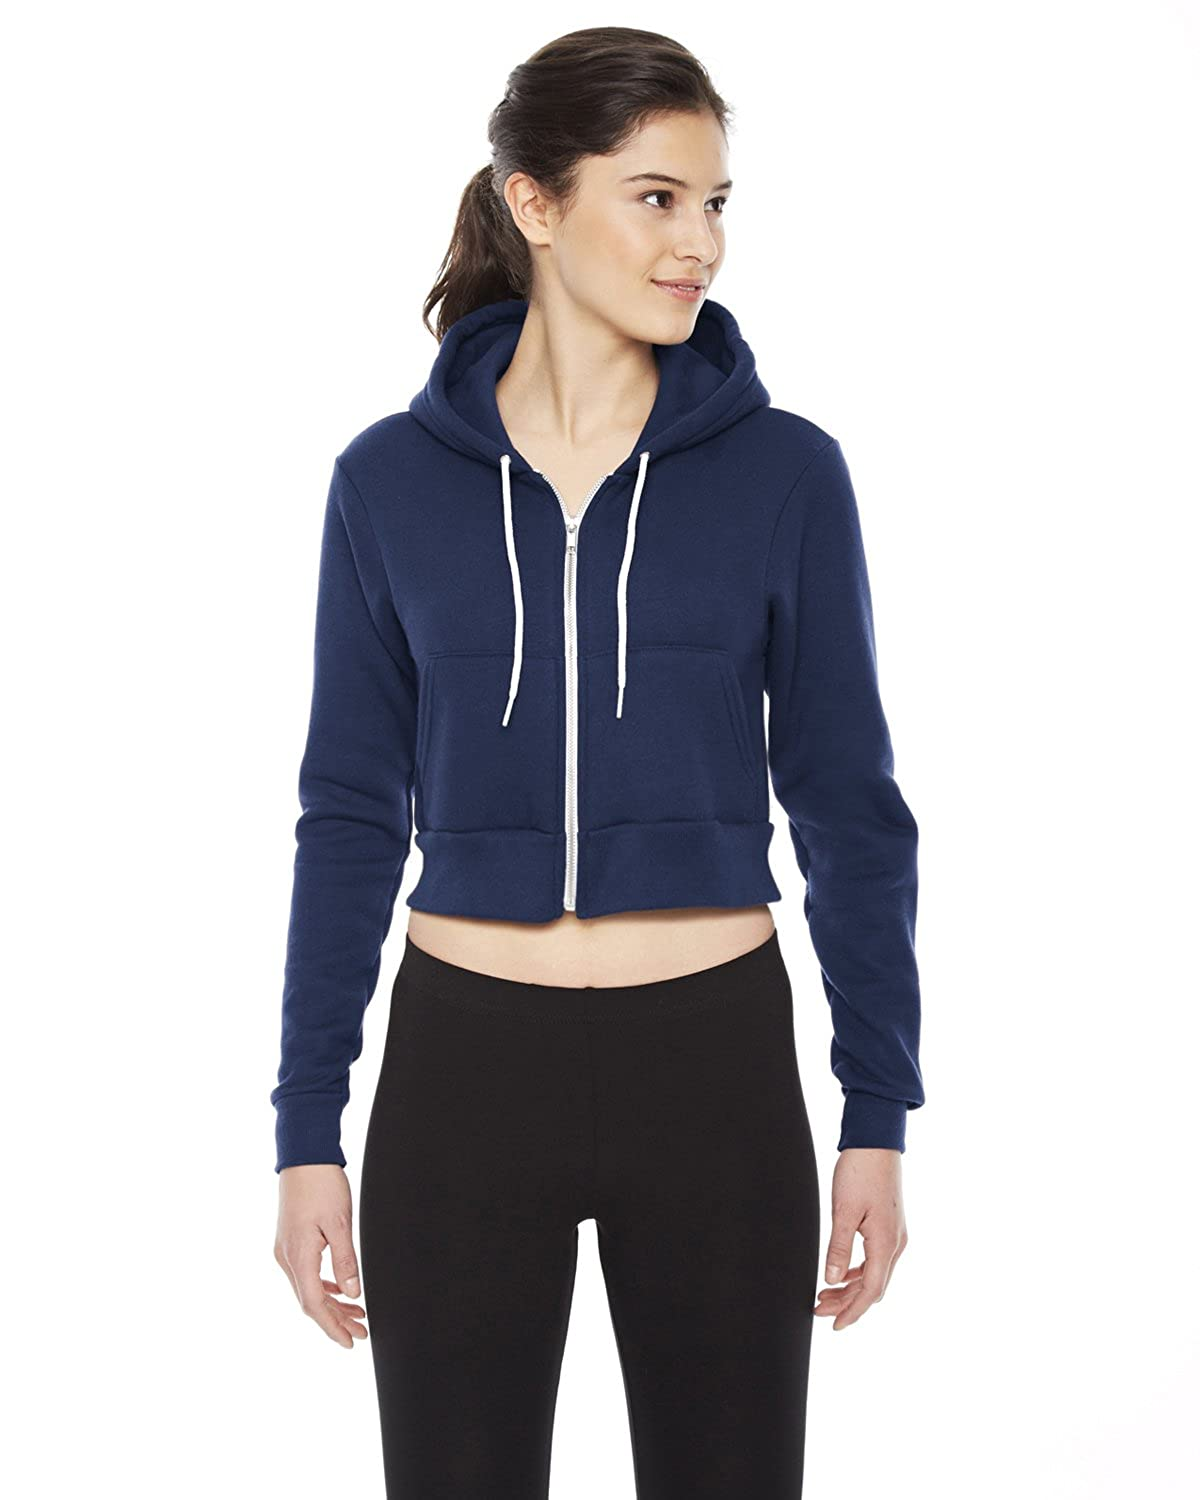 bd1d7c8f3e American Apparel F397 - Ladies Cropped Flex Fleece Zip Hoodie: Amazon.ca:  Clothing & Accessories